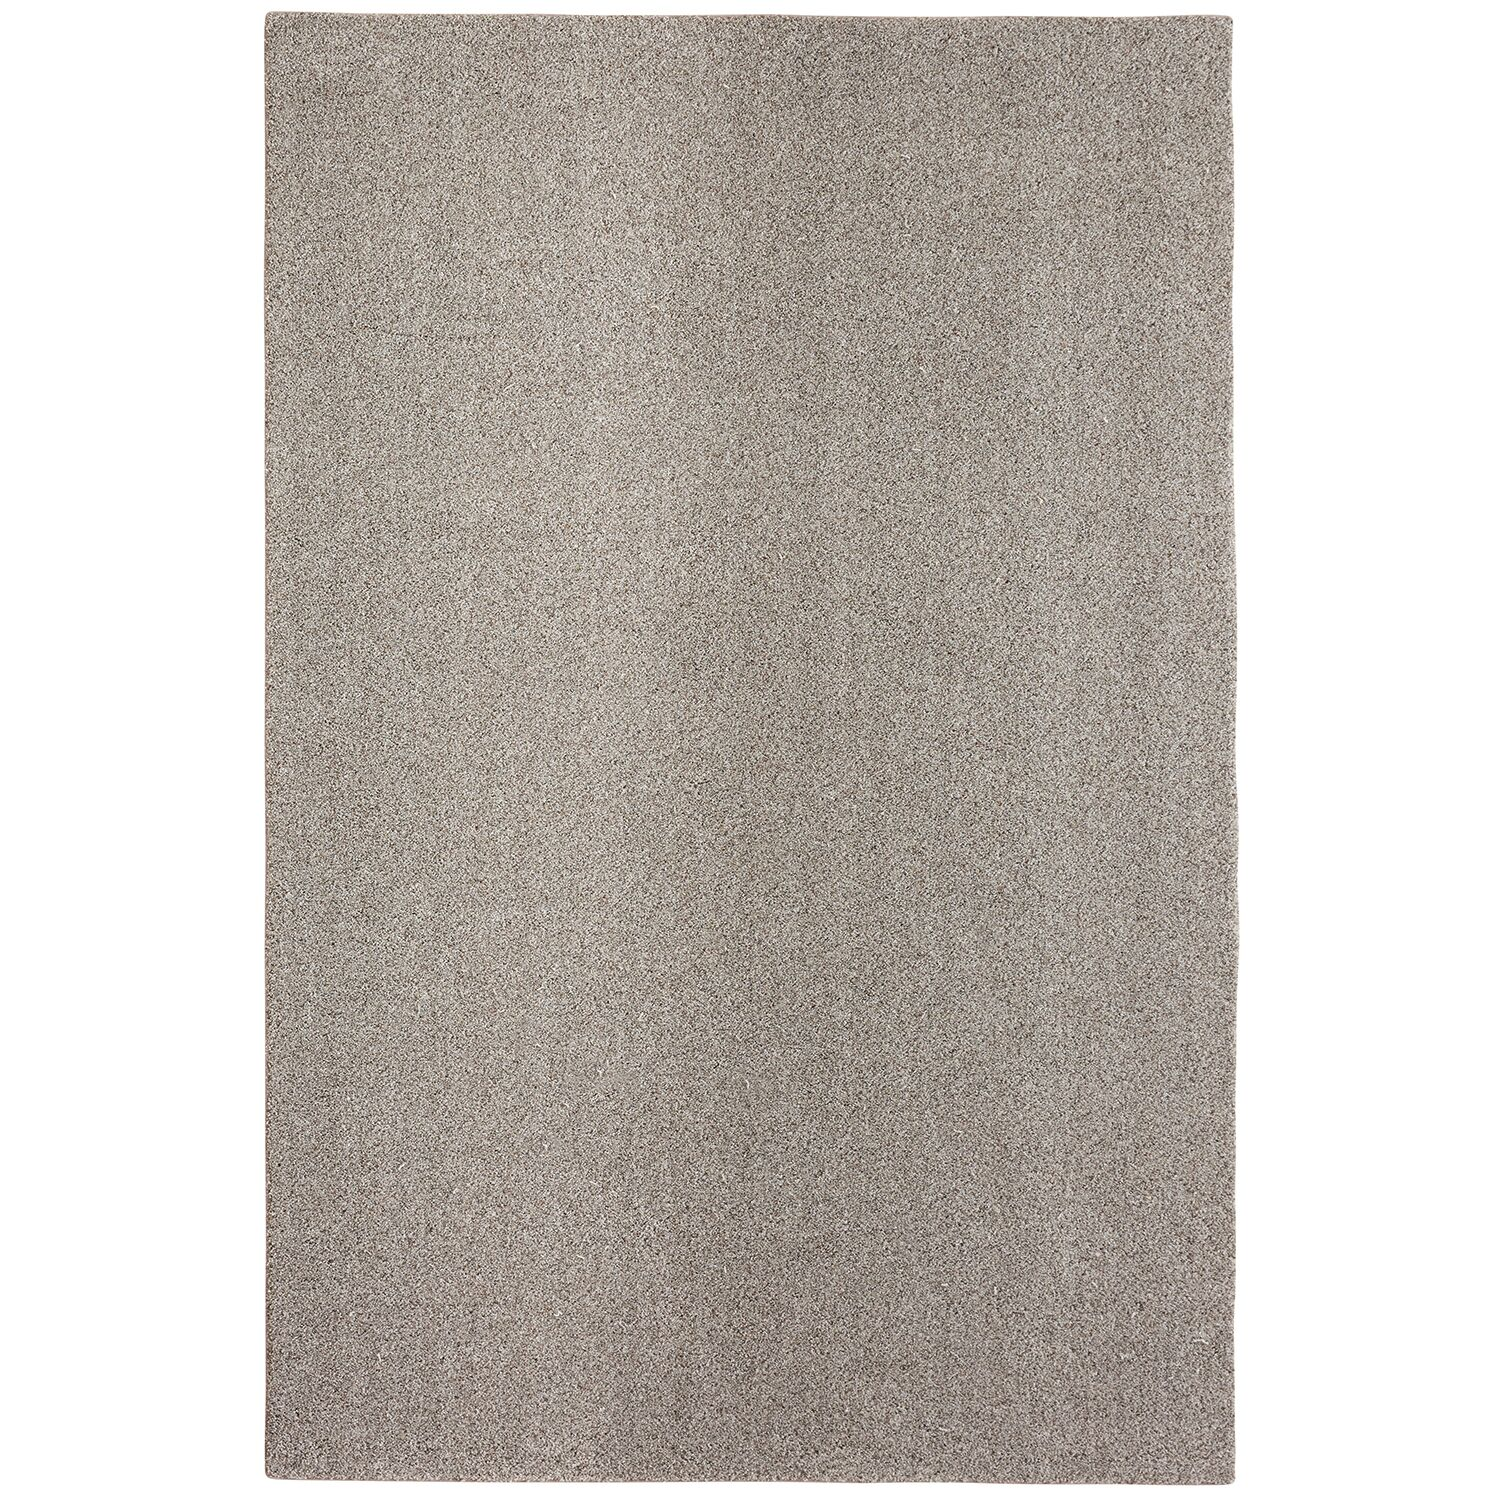 Bettie Hand-Tufted Gray Area Rug Rug Size: Rectangle 9' x 12'